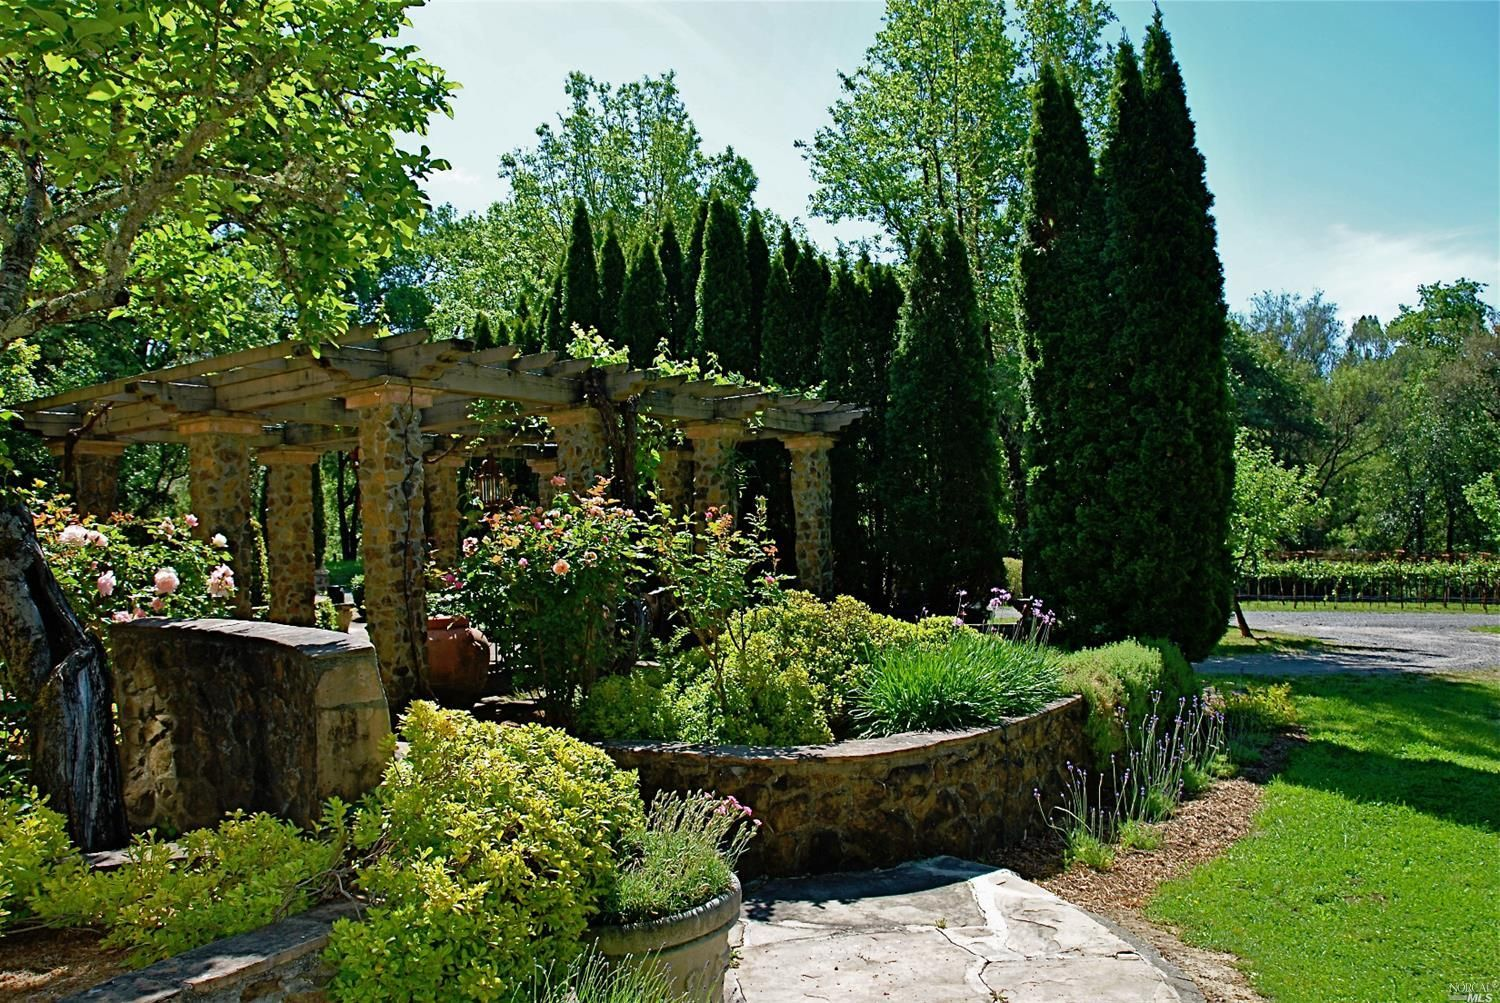 Pin by M. RODGERS on Landscaping: Hardscape   Hardscape ...